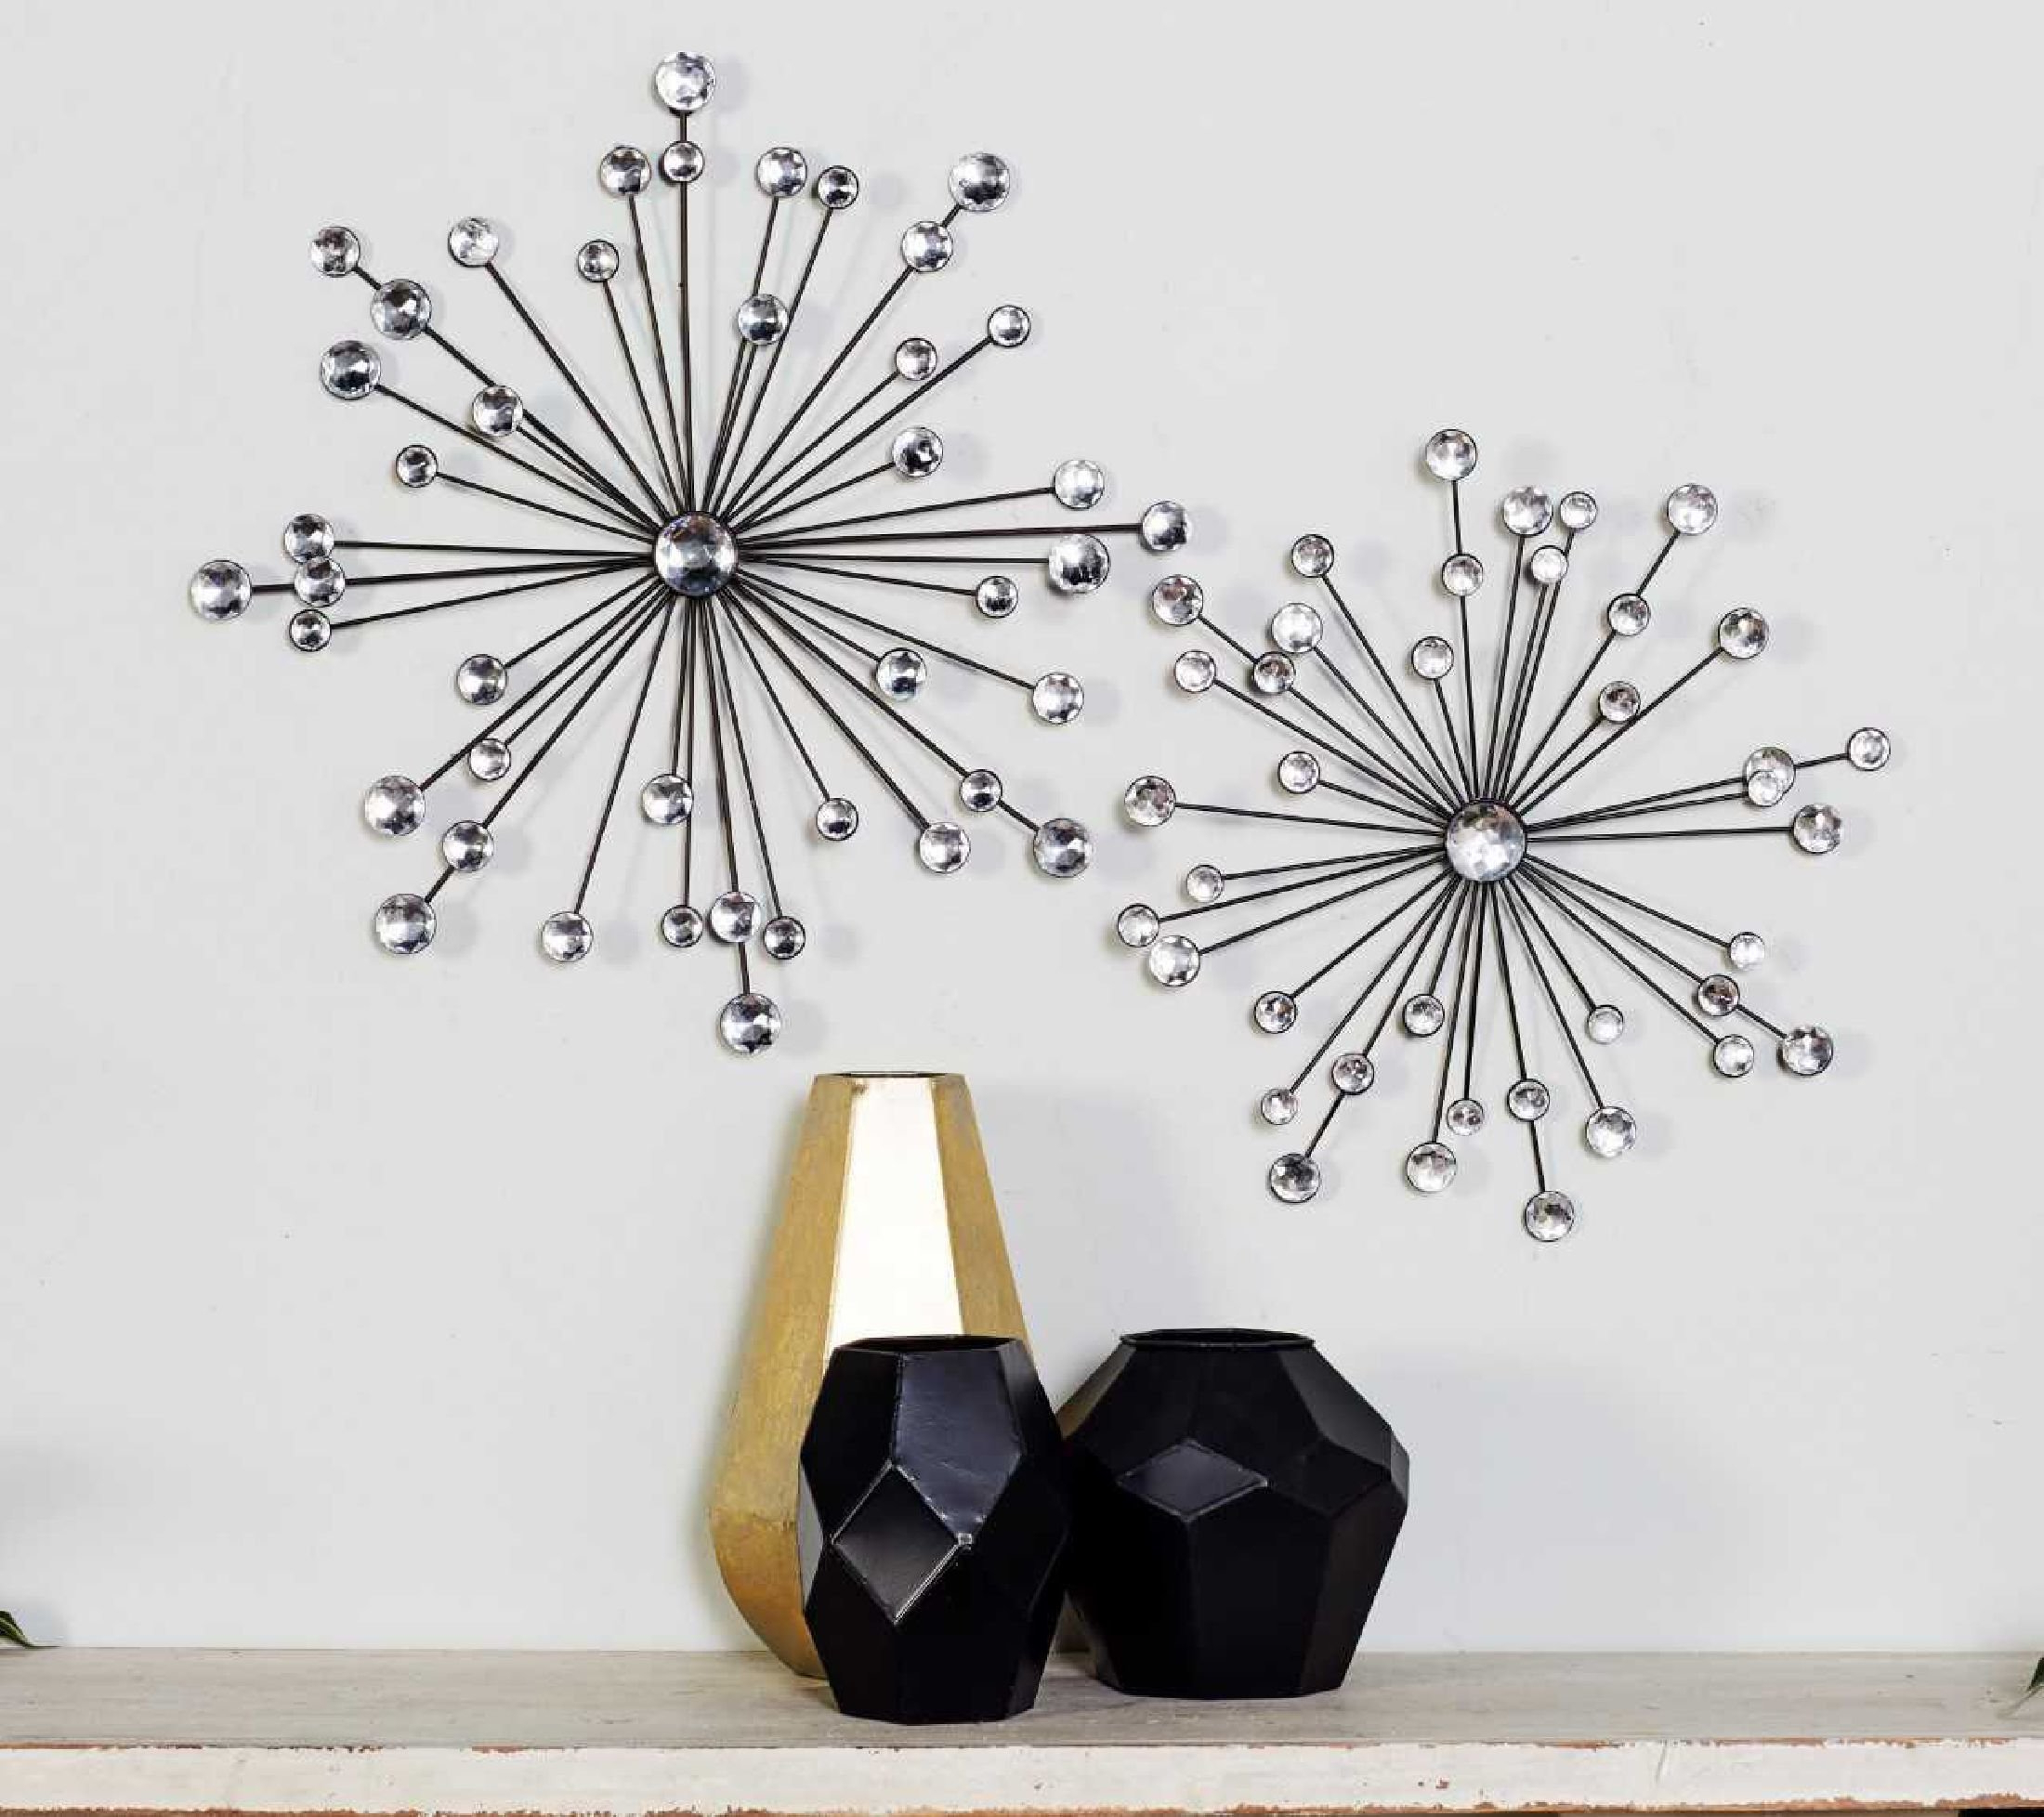 2 Piece Starburst Wall Decor Sets With Regard To Favorite Cole & Grey 3 Piece Metal And Acrylic Wall Décor Set & Reviews (View 2 of 20)